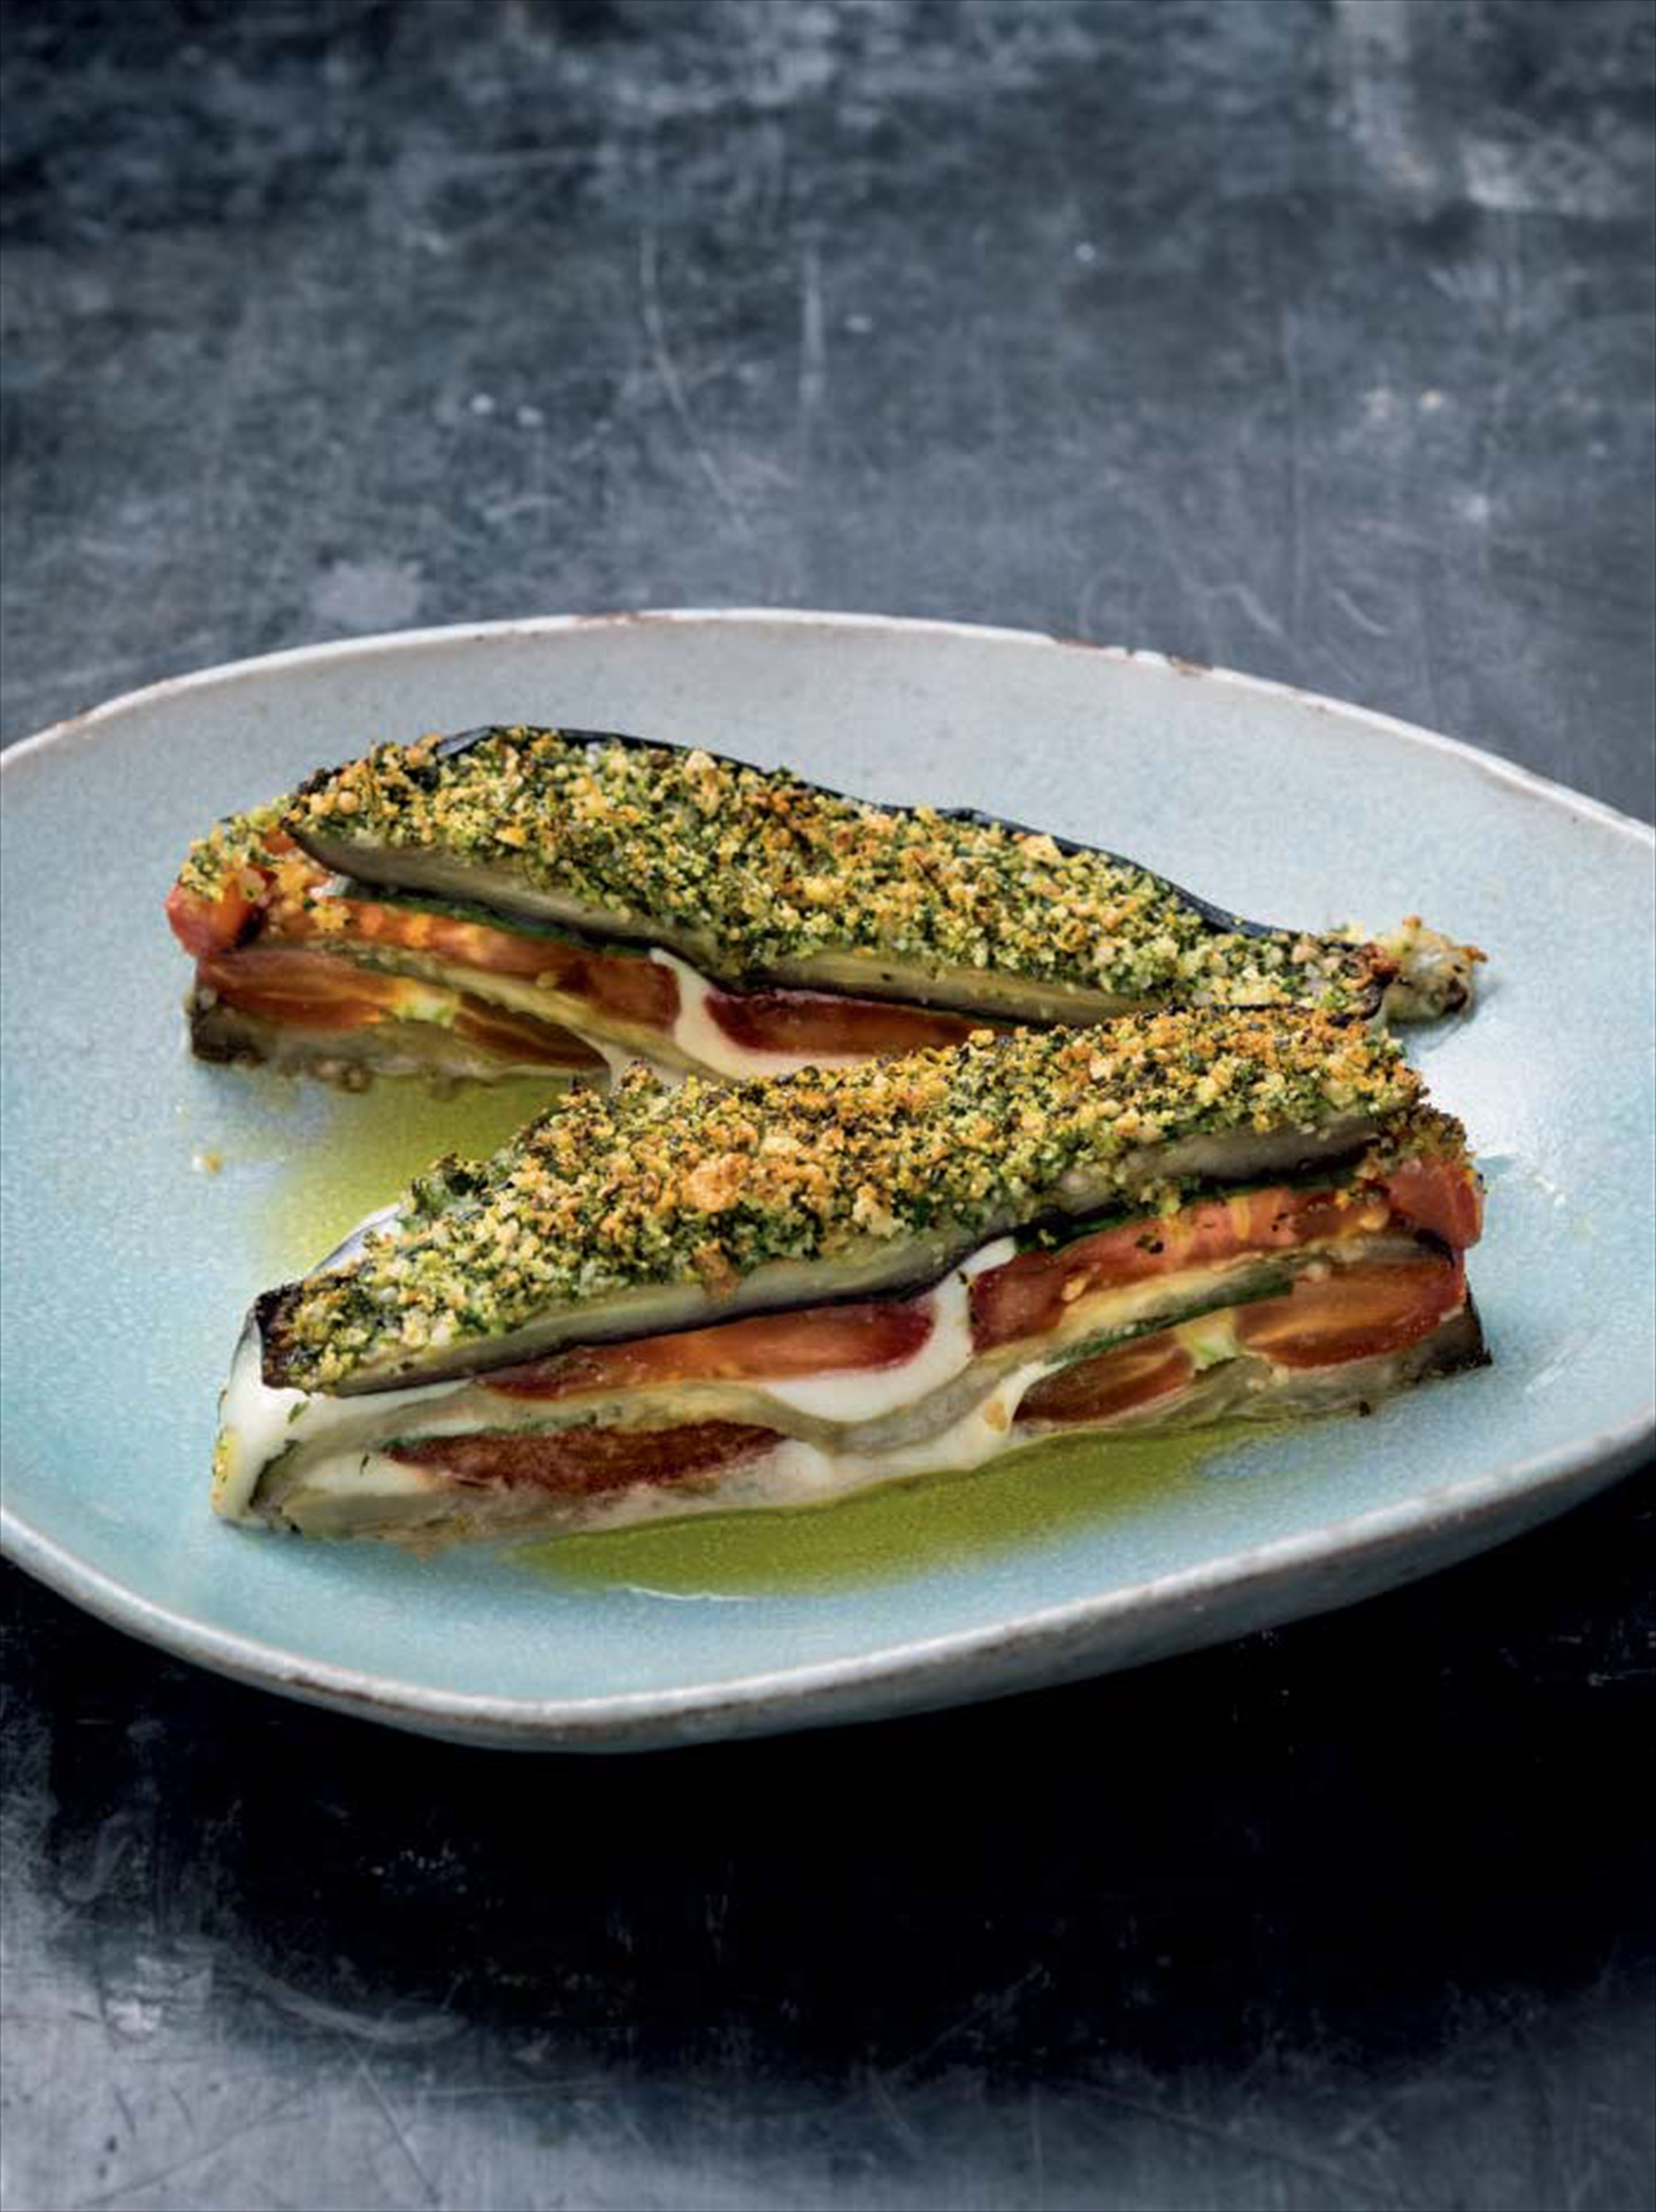 Don Alfonso's aubergines